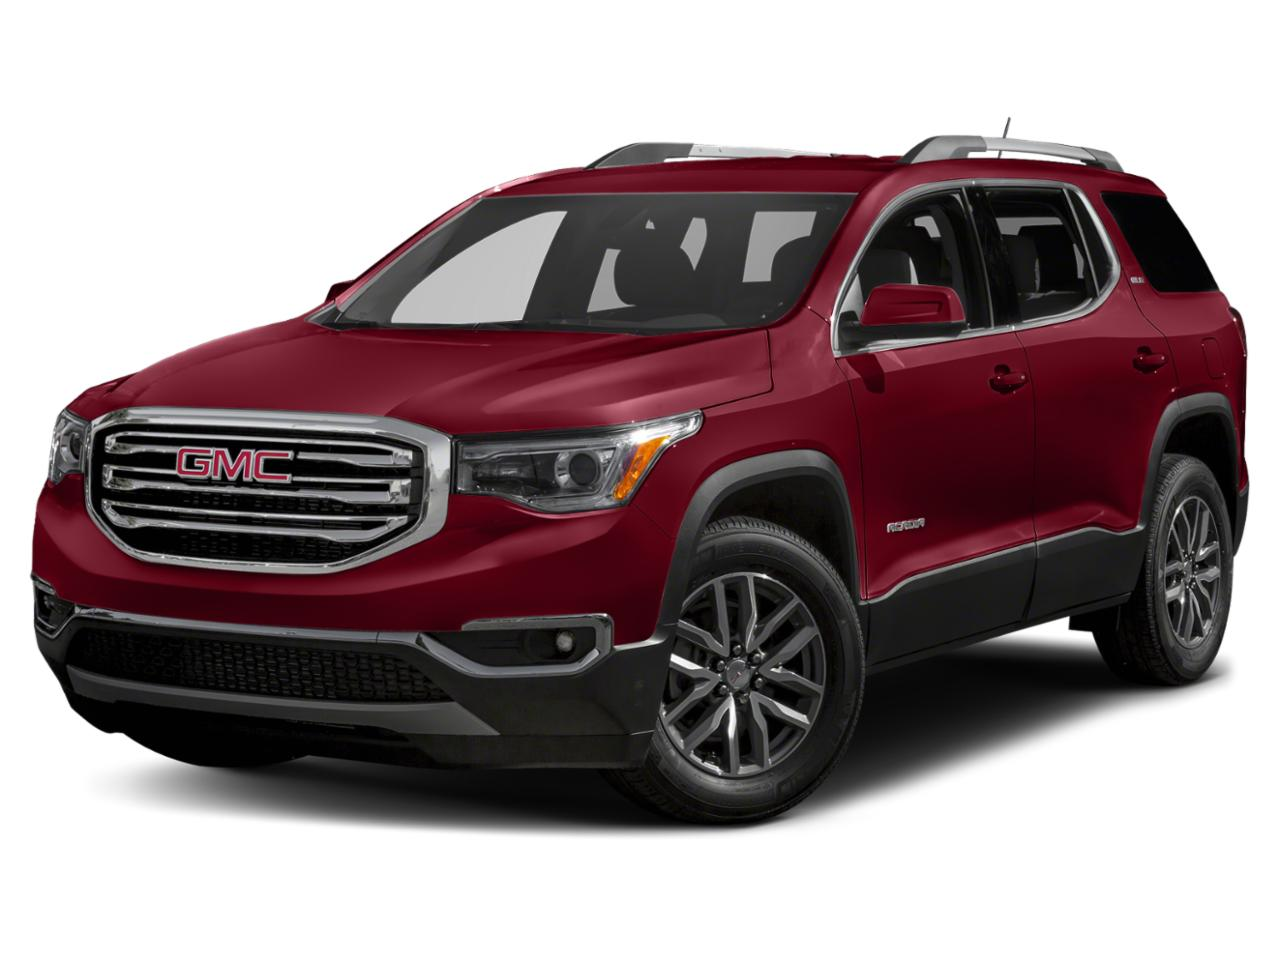 2019 GMC Acadia Vehicle Photo in Fishers, IN 46038